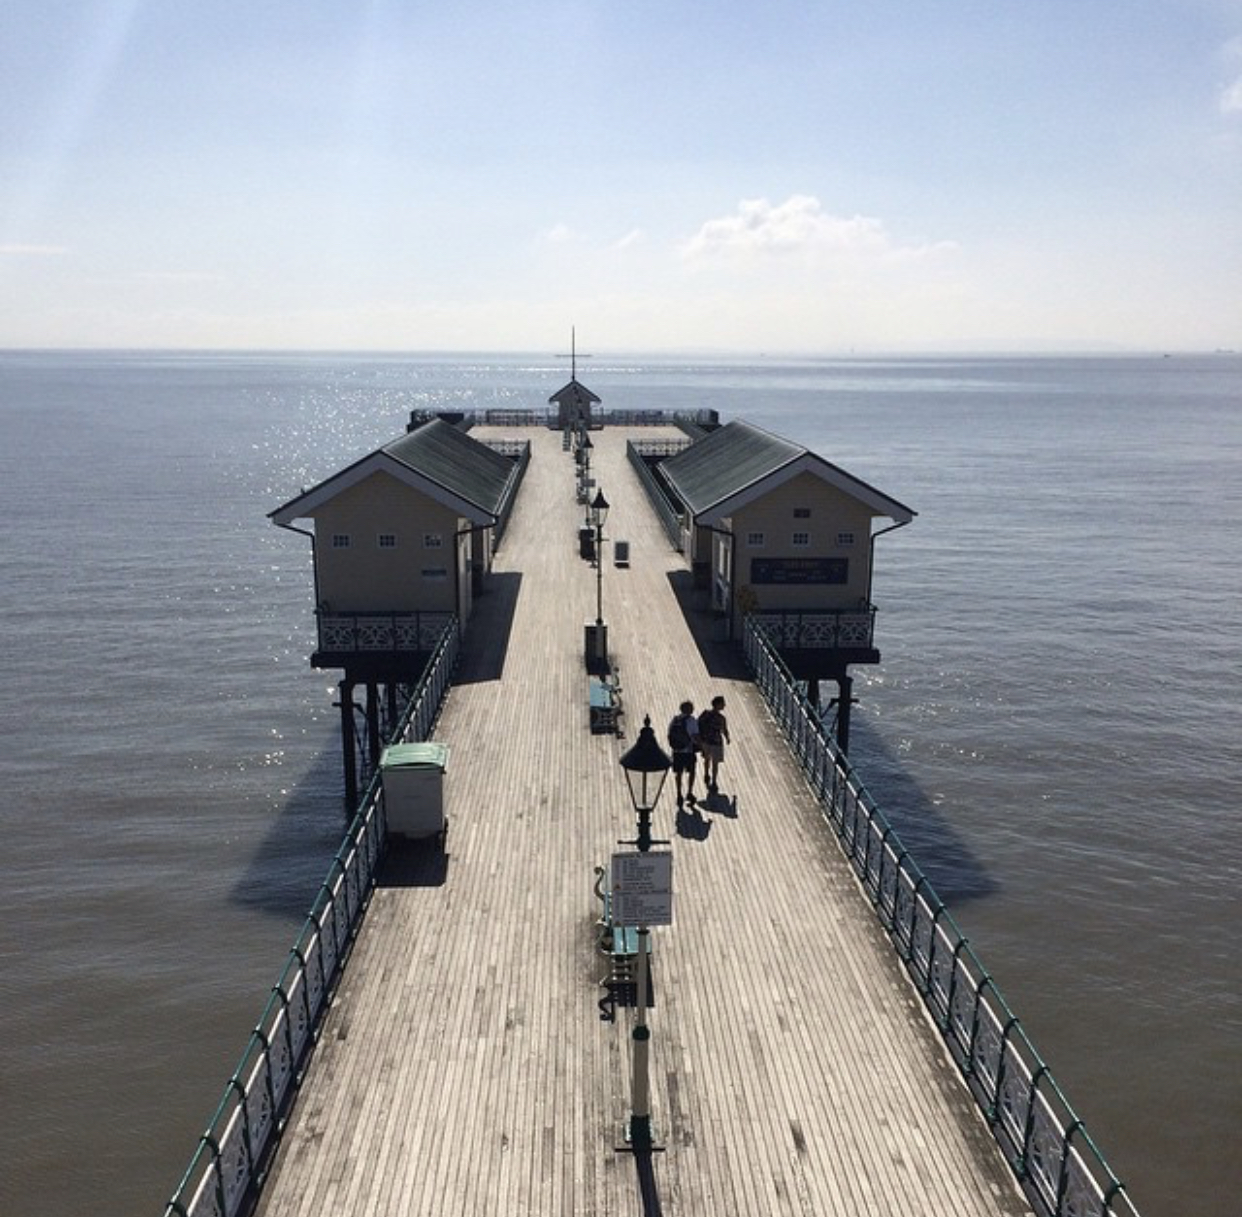 The view from 617 Room, The Observatory at Penarth Pier Pavilion